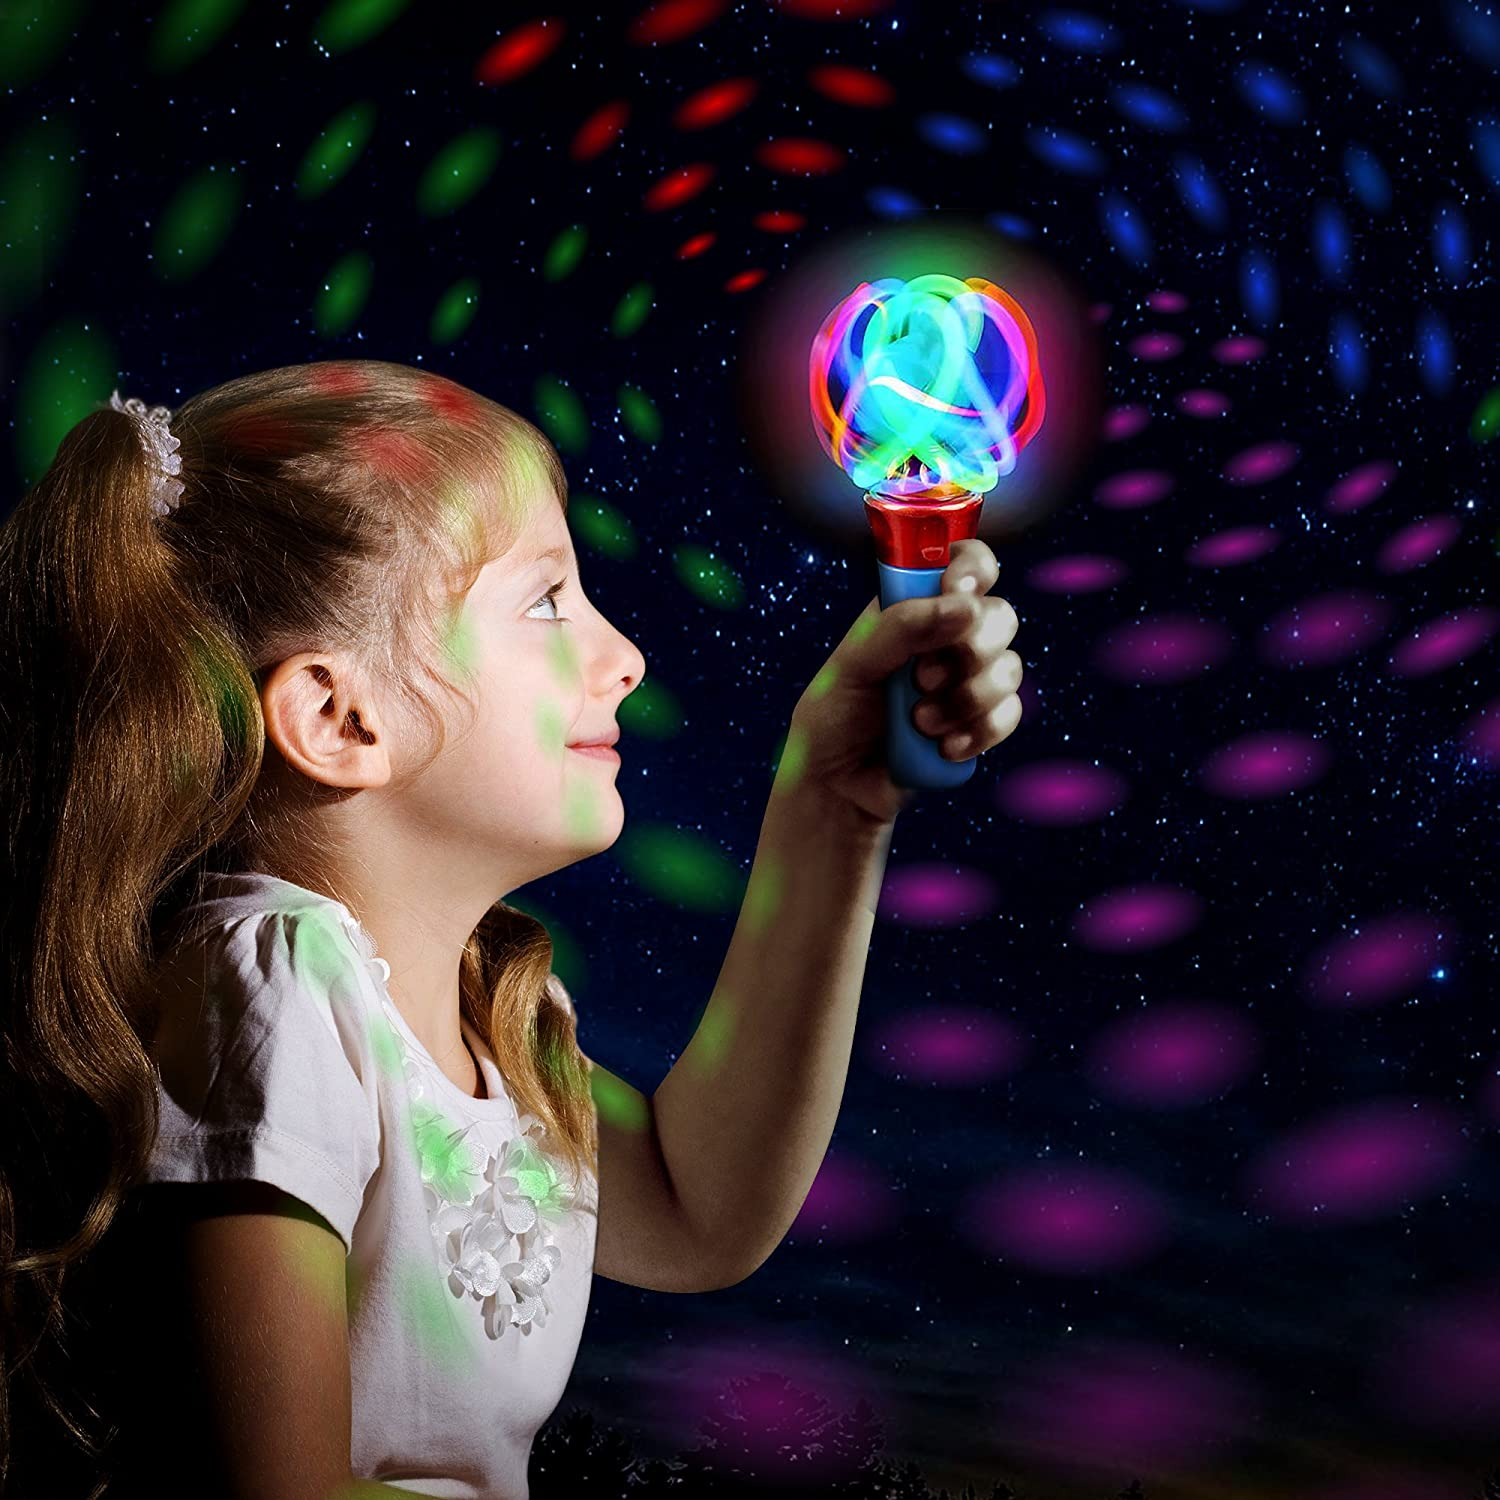 7/â/€� LED Electronic Spin Toy for Kids with Batteries Included Great Gift Idea for Boys Girls Toddlers ArtCreativity Light up Orbiter Spinning Wand Fun Birthday Party Favor// Carnival Prize